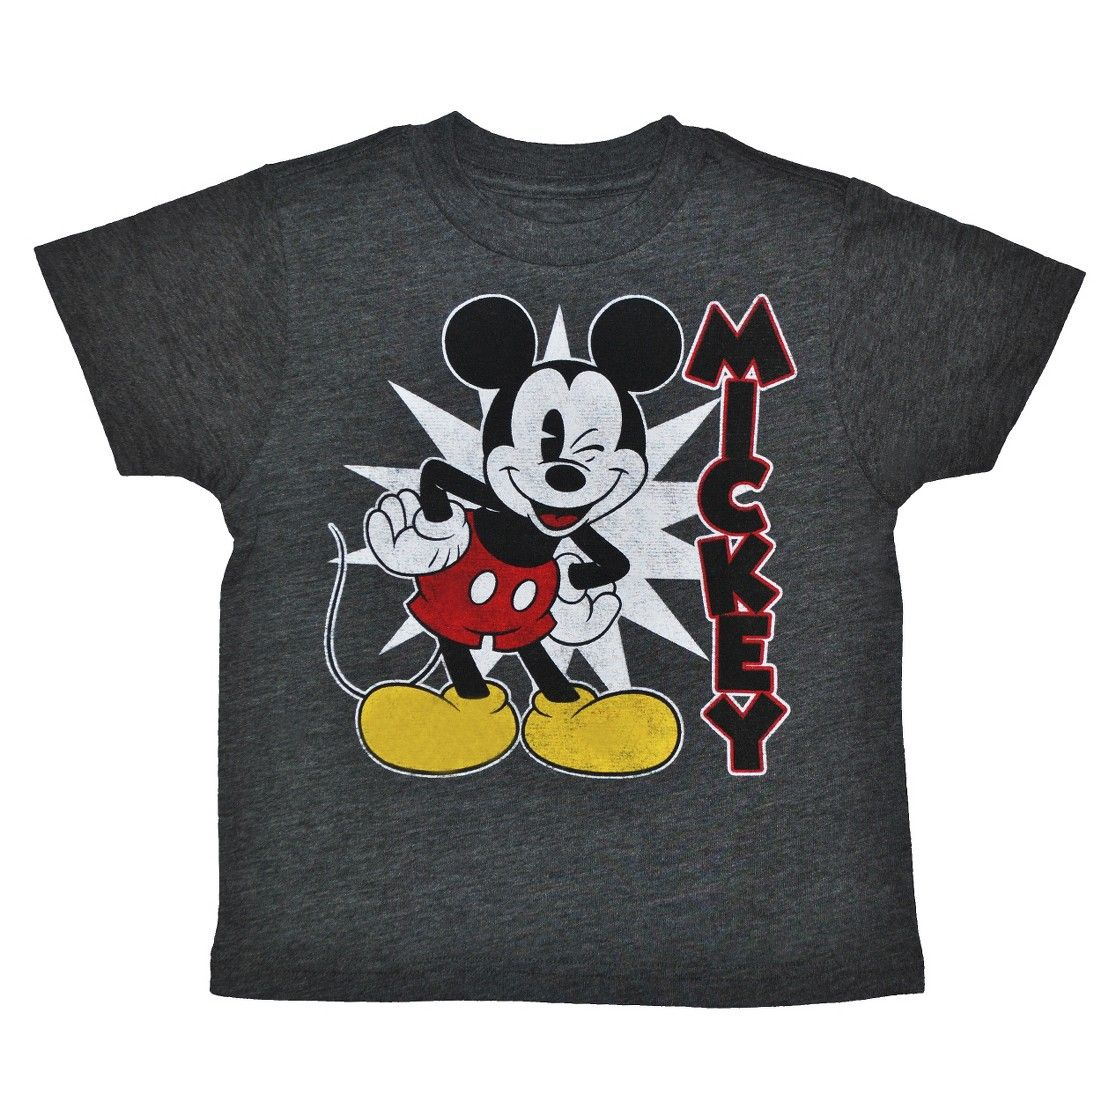 Disney� Mickey Mouse Infant Toddler Boys' Short Sleeve Tee - Charcoal Heather